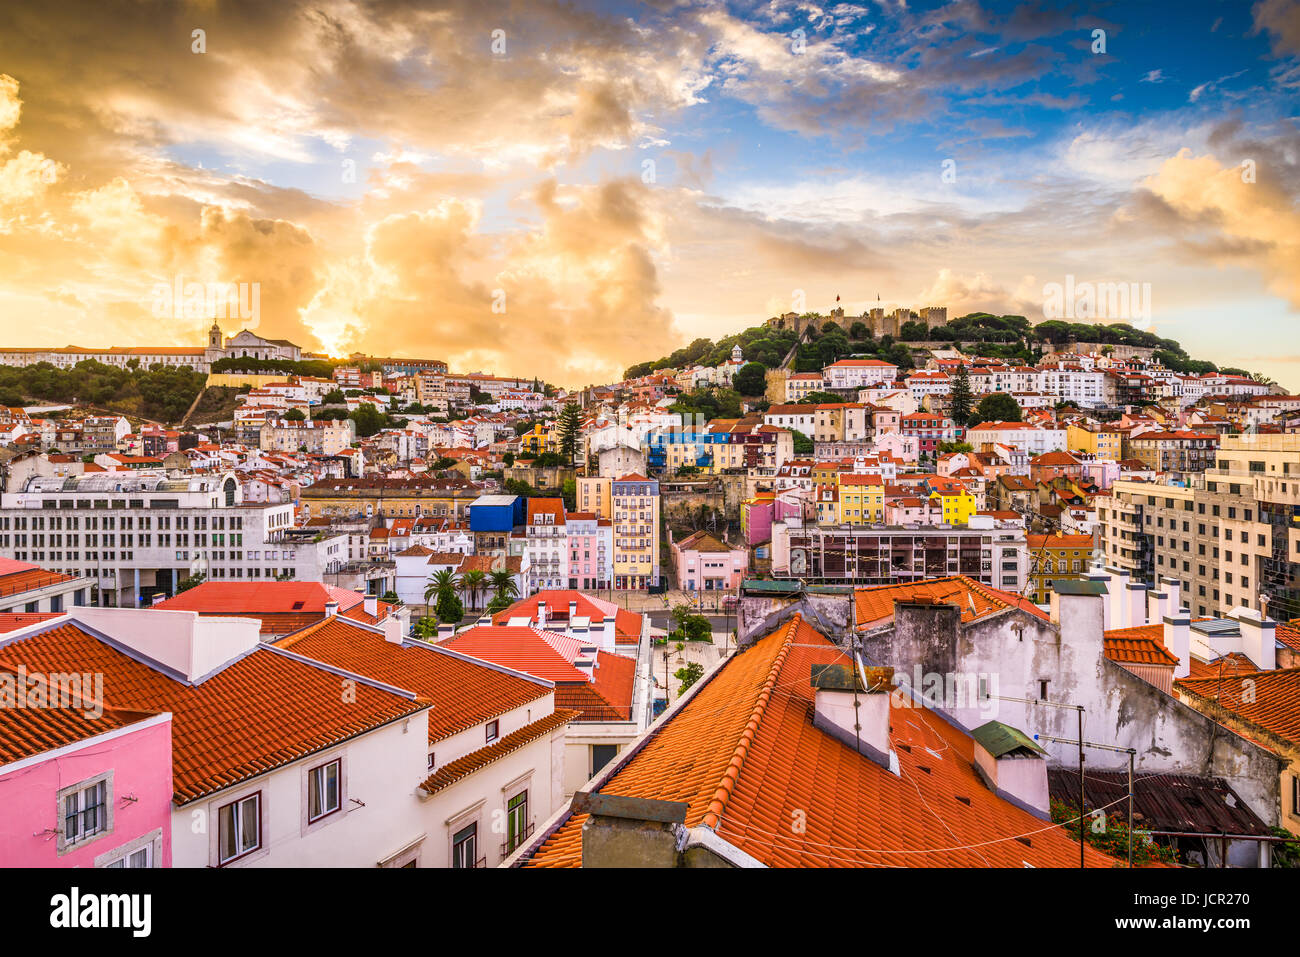 Lisbonne, Portugal skyline at Château Sao Jorge. Photo Stock